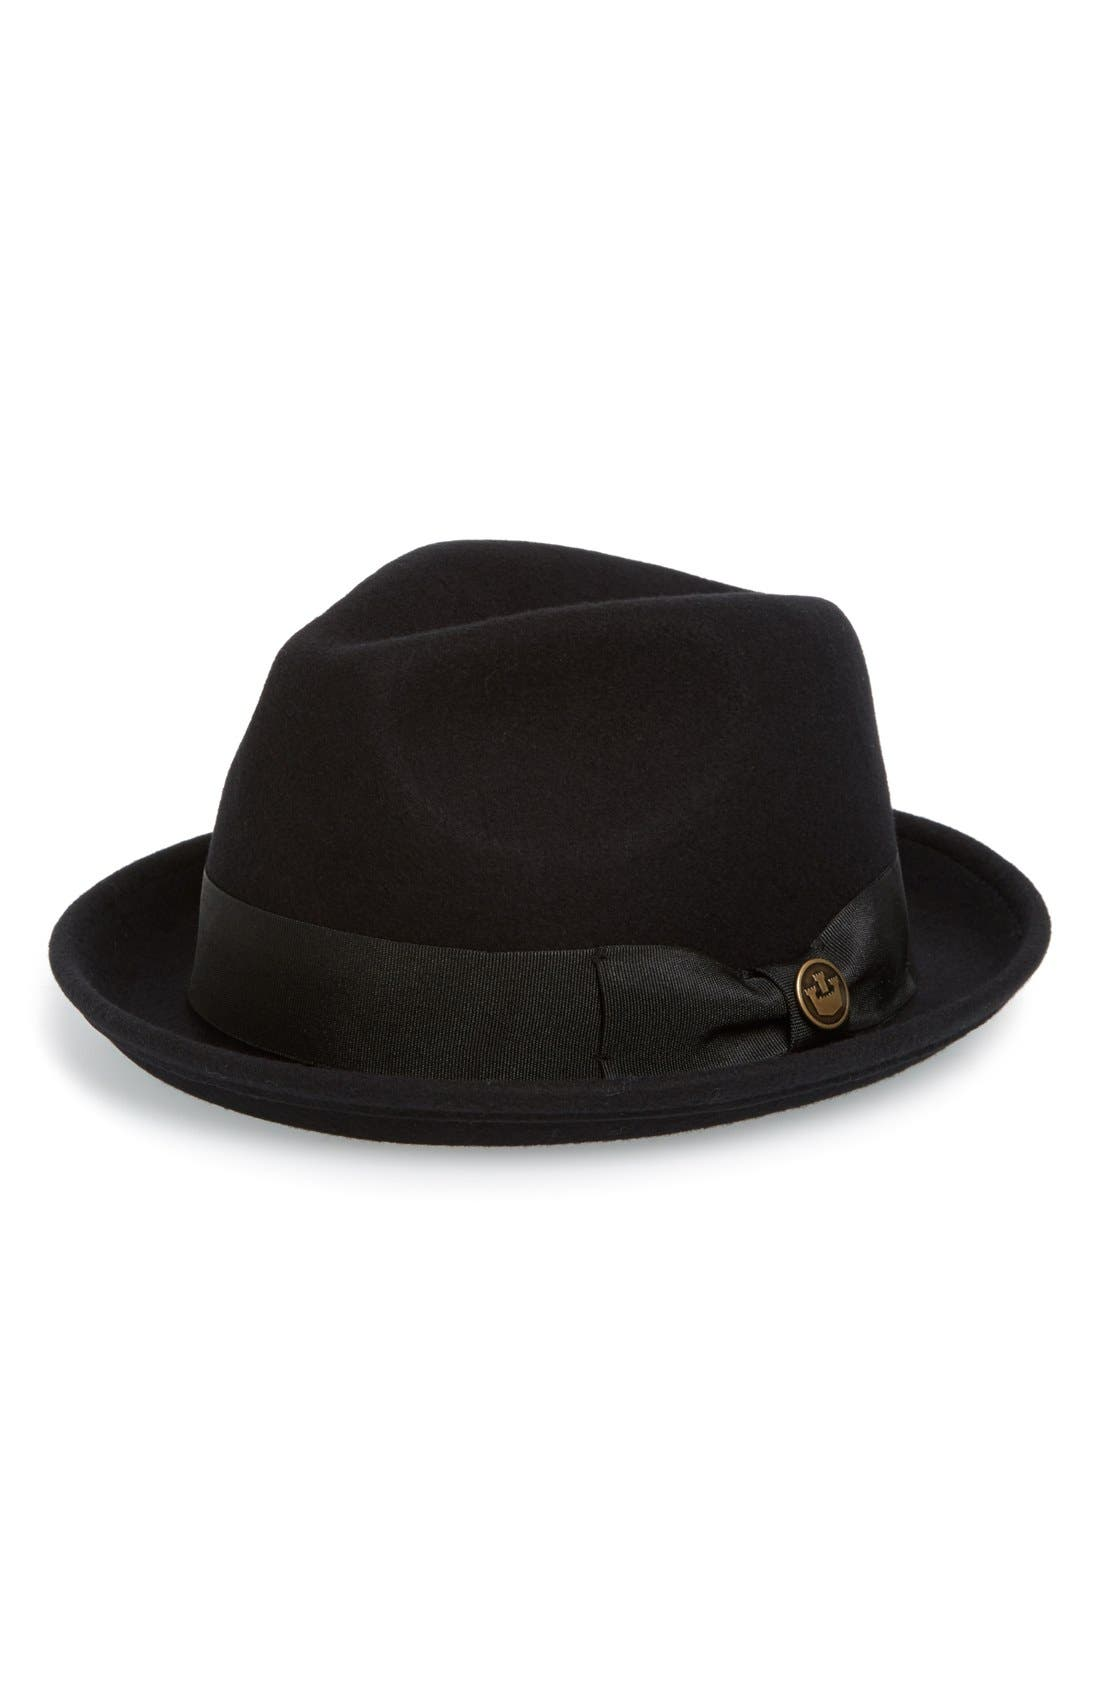 Goorin Brothers The Good Boy Felt Wool Fedora